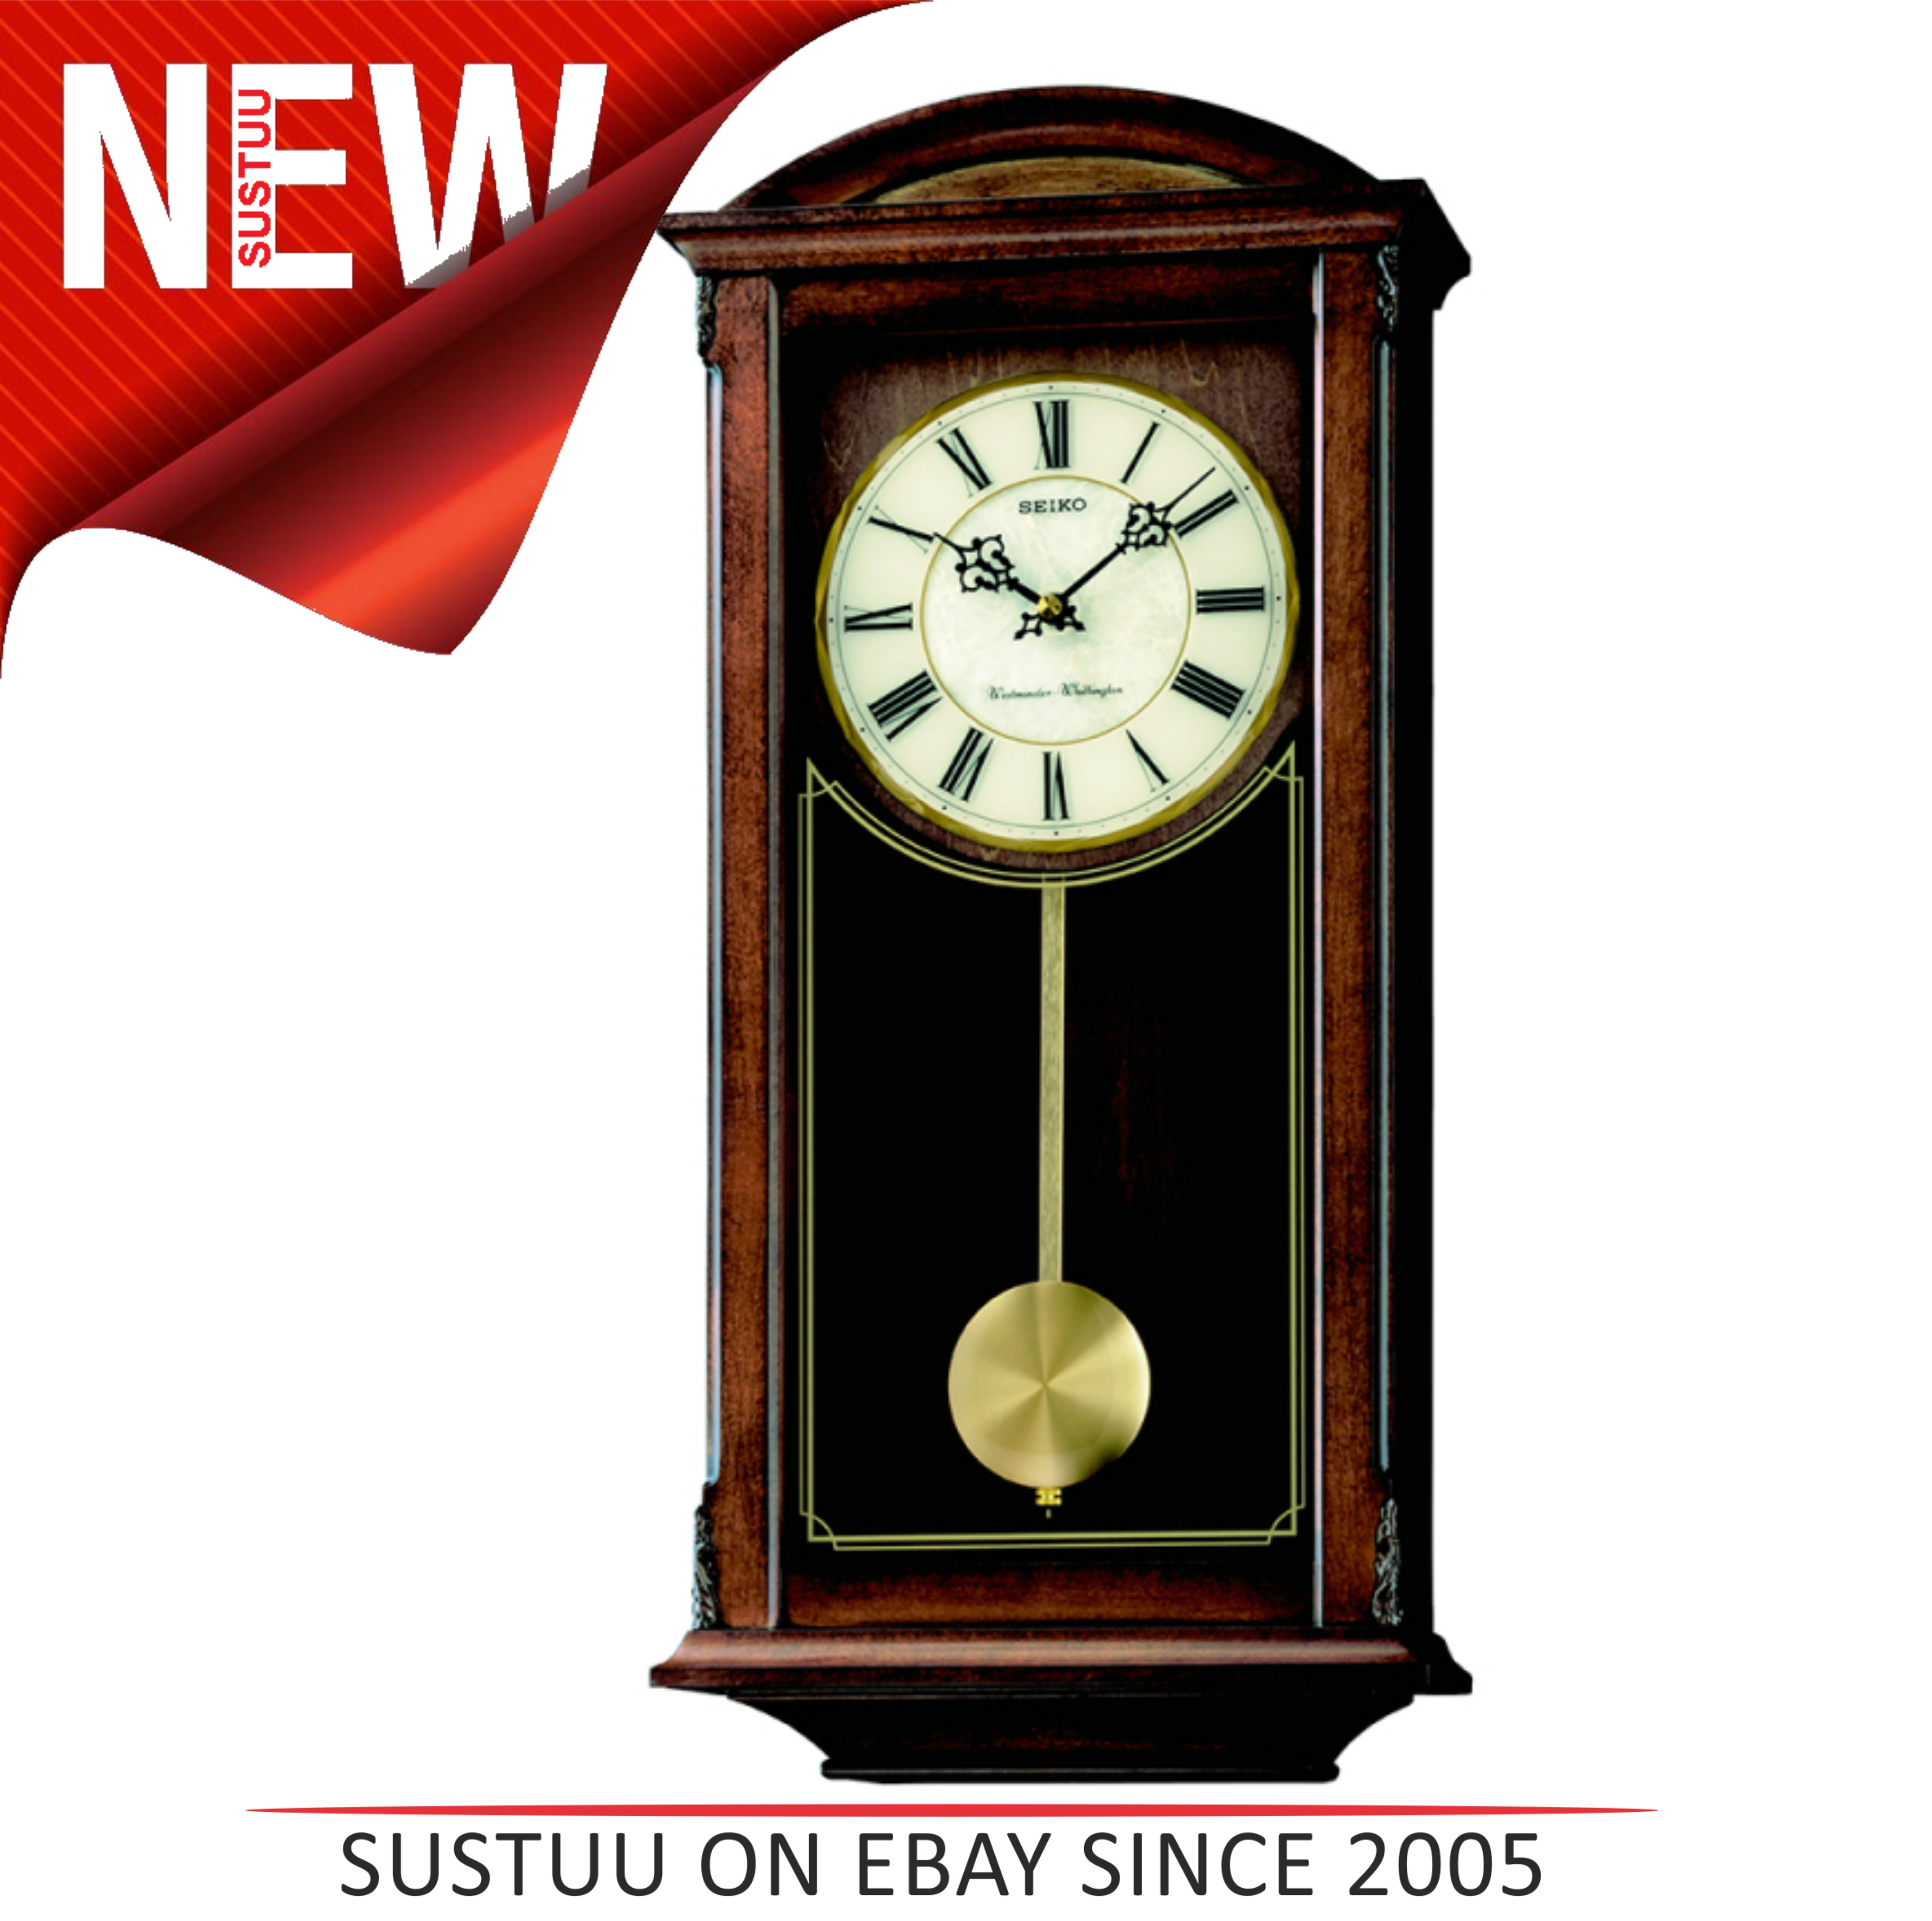 Seiko Analogue Pendulum Wall Clockwestminster Whittington Chimes